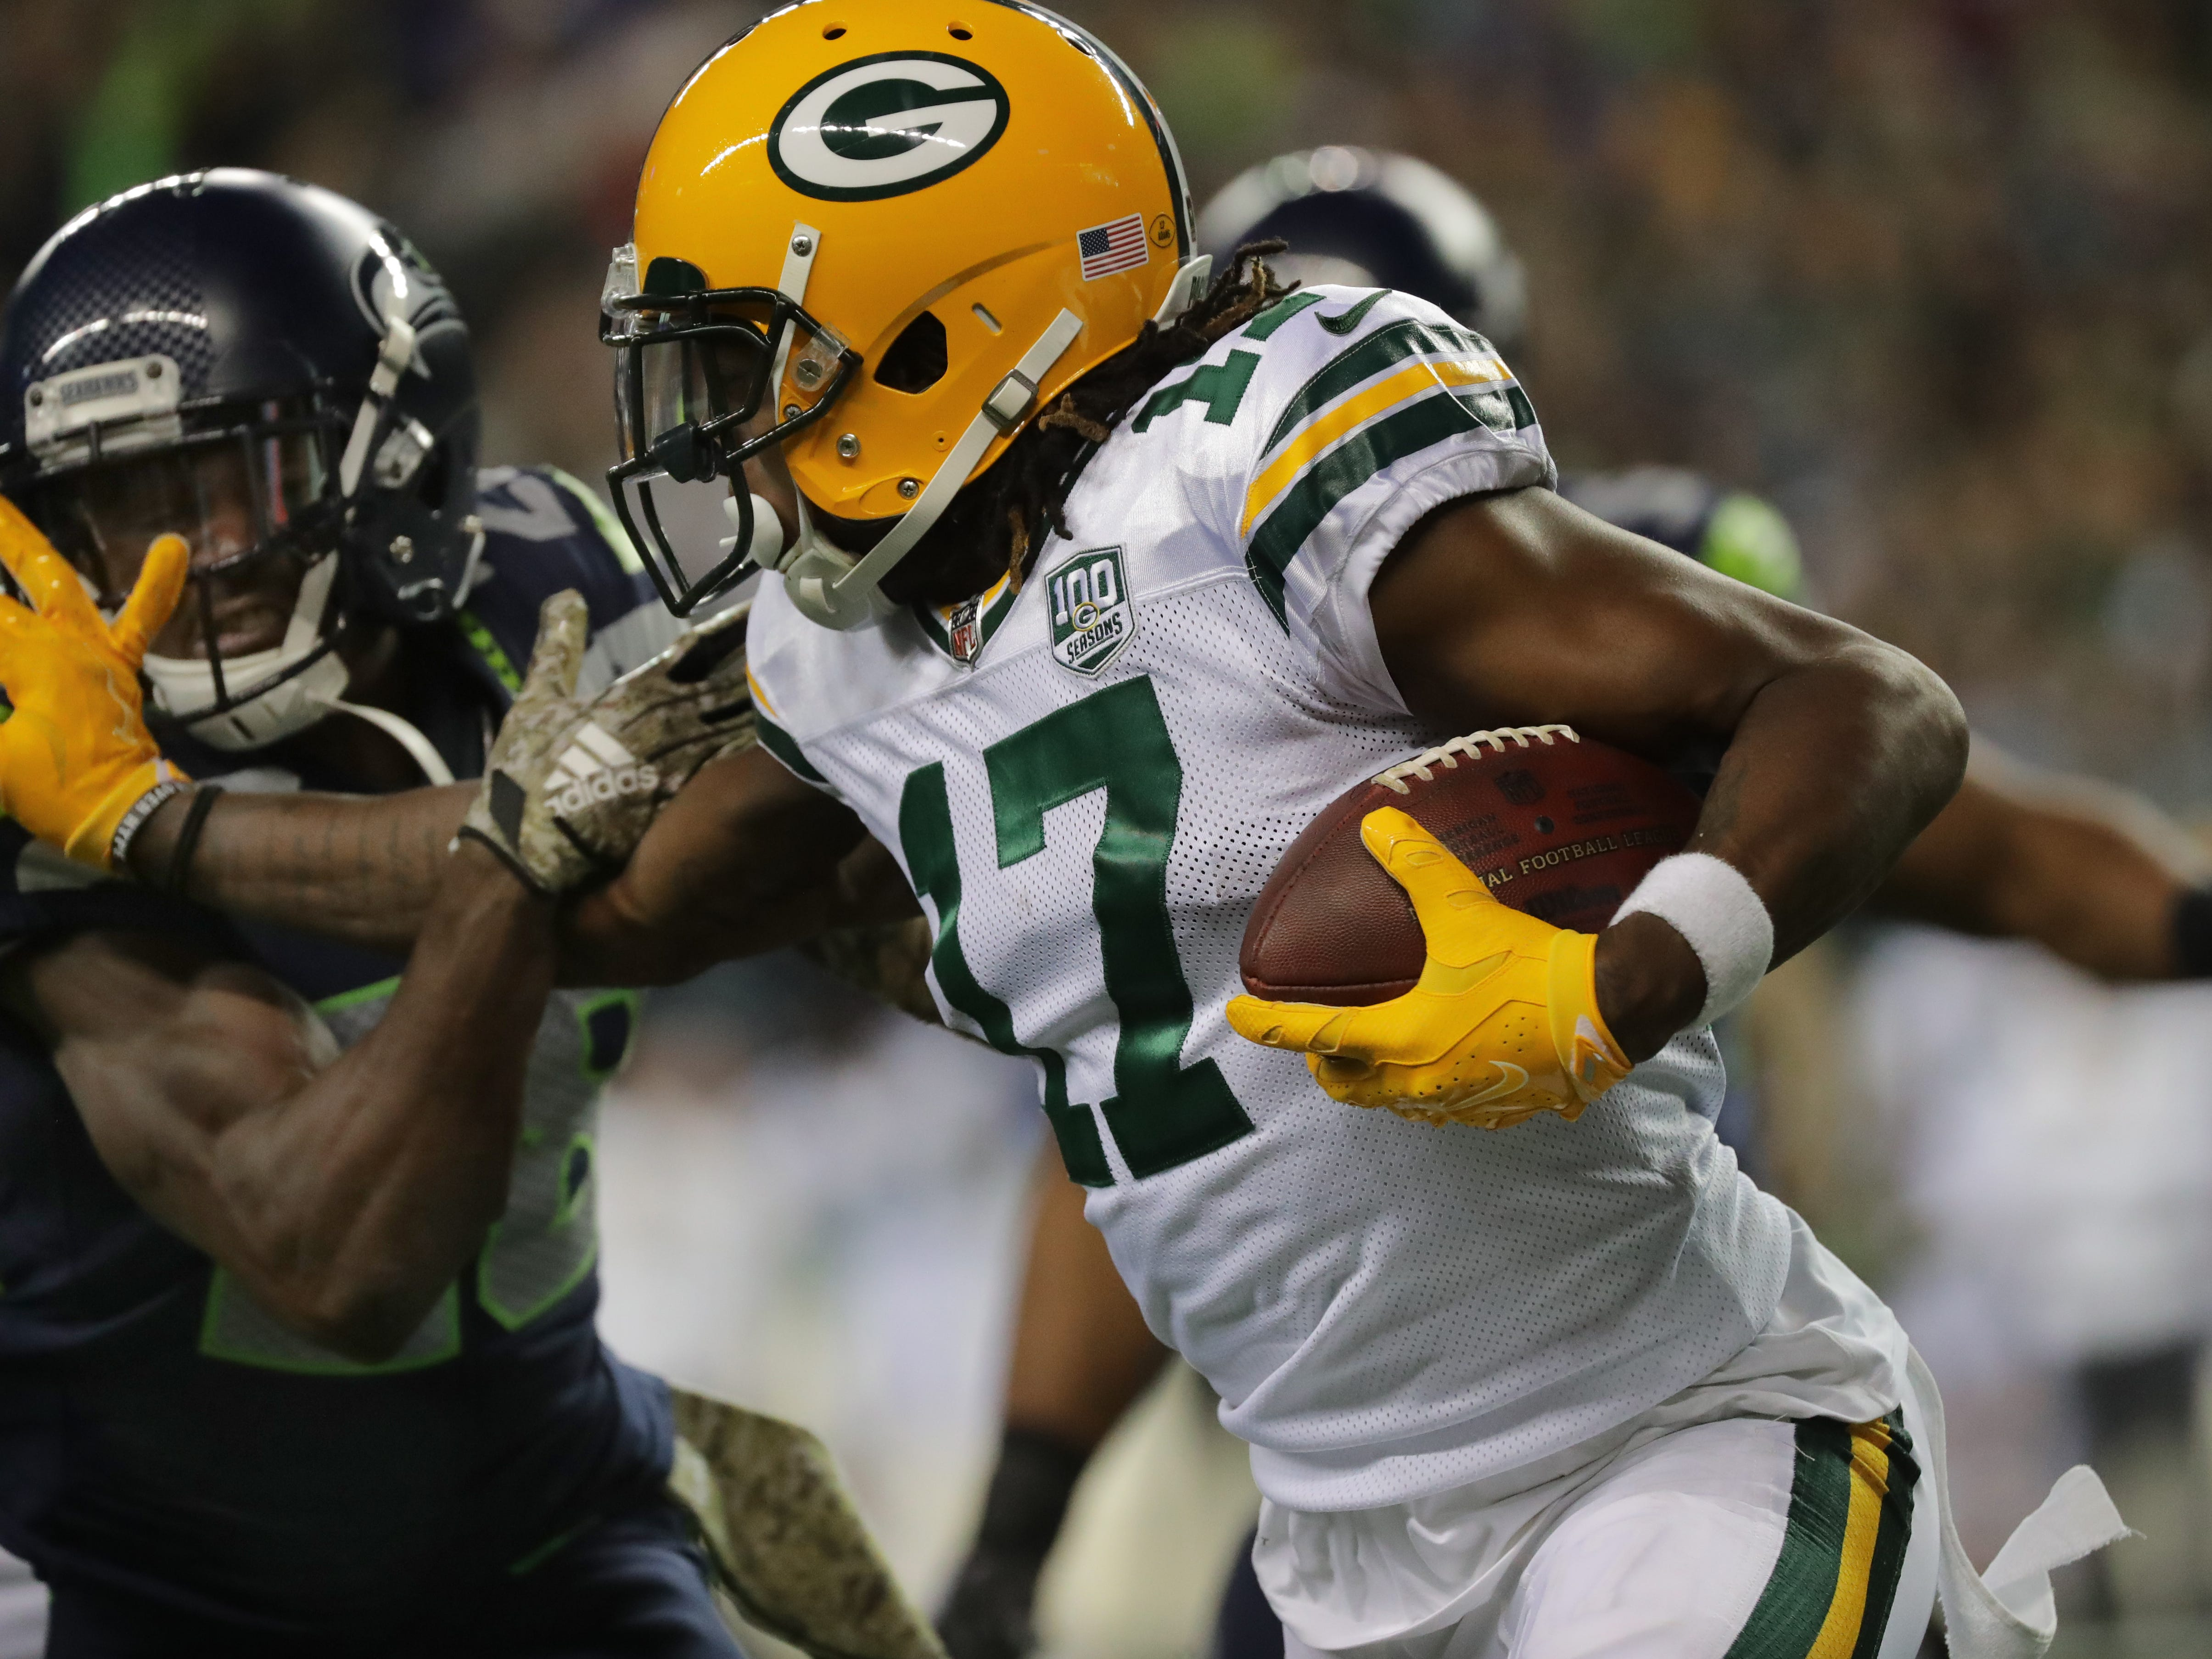 Green Bay Packers wide receiver Davante Adams (17) makes an 11-yard reception during the second quarter of their game against the Seattle Seahawks Thursday, November 25, 2018 at CenturyLink Field in Seattle, Wash.  MARK HOFFMAN/MHOFFMAN@JOURNALSENTINEL.COM